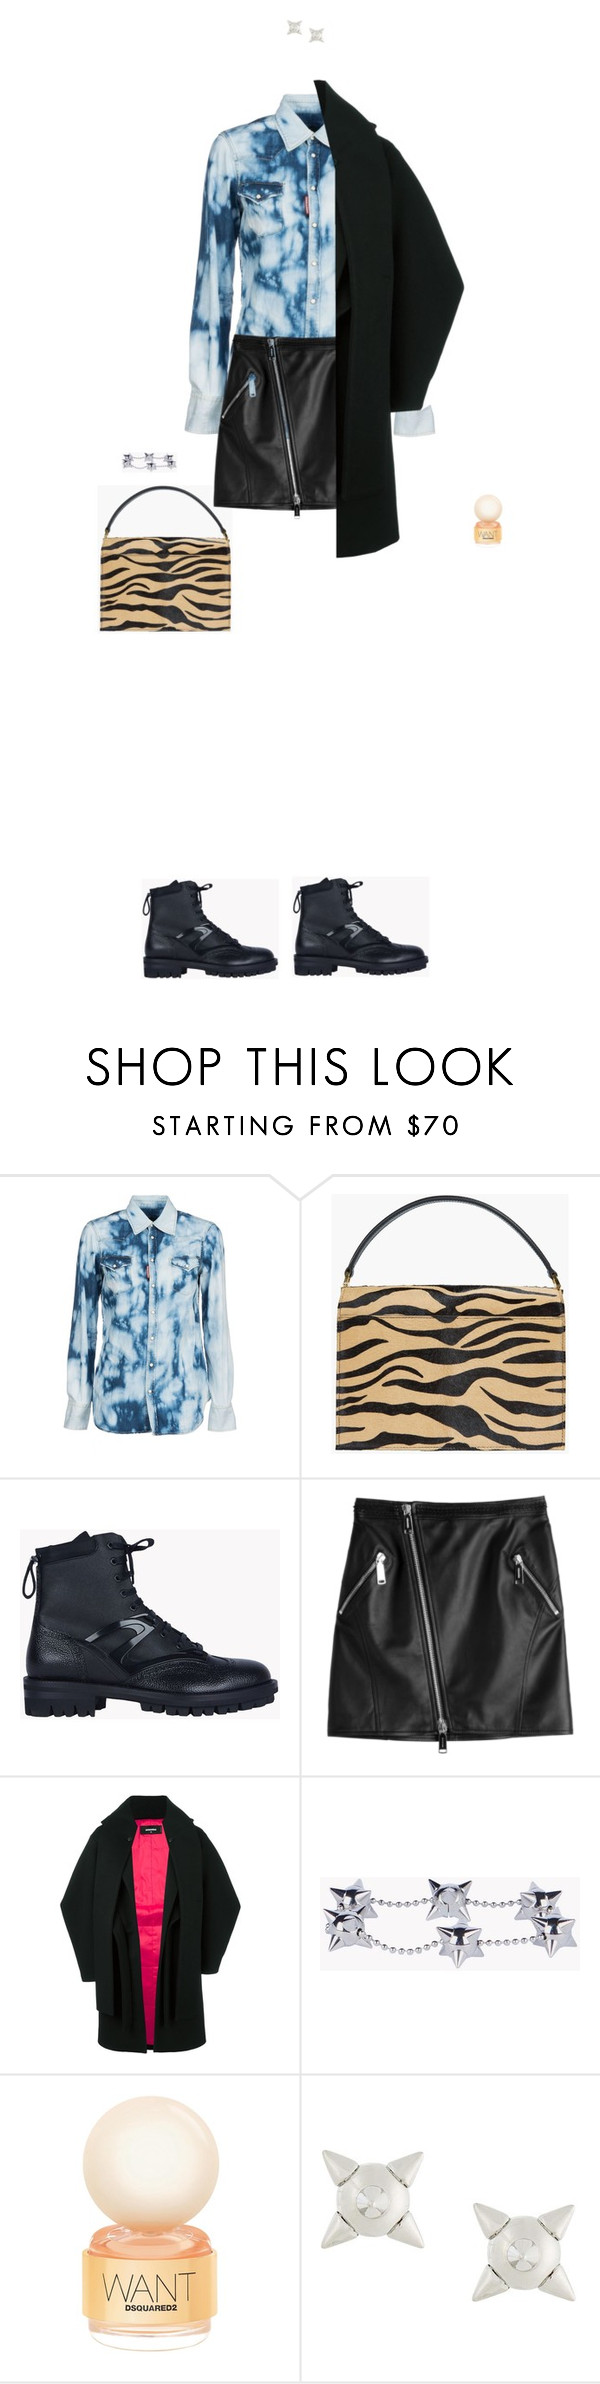 """Dsquared2"" by yulia-k ❤ liked on Polyvore featuring Dsquared2"